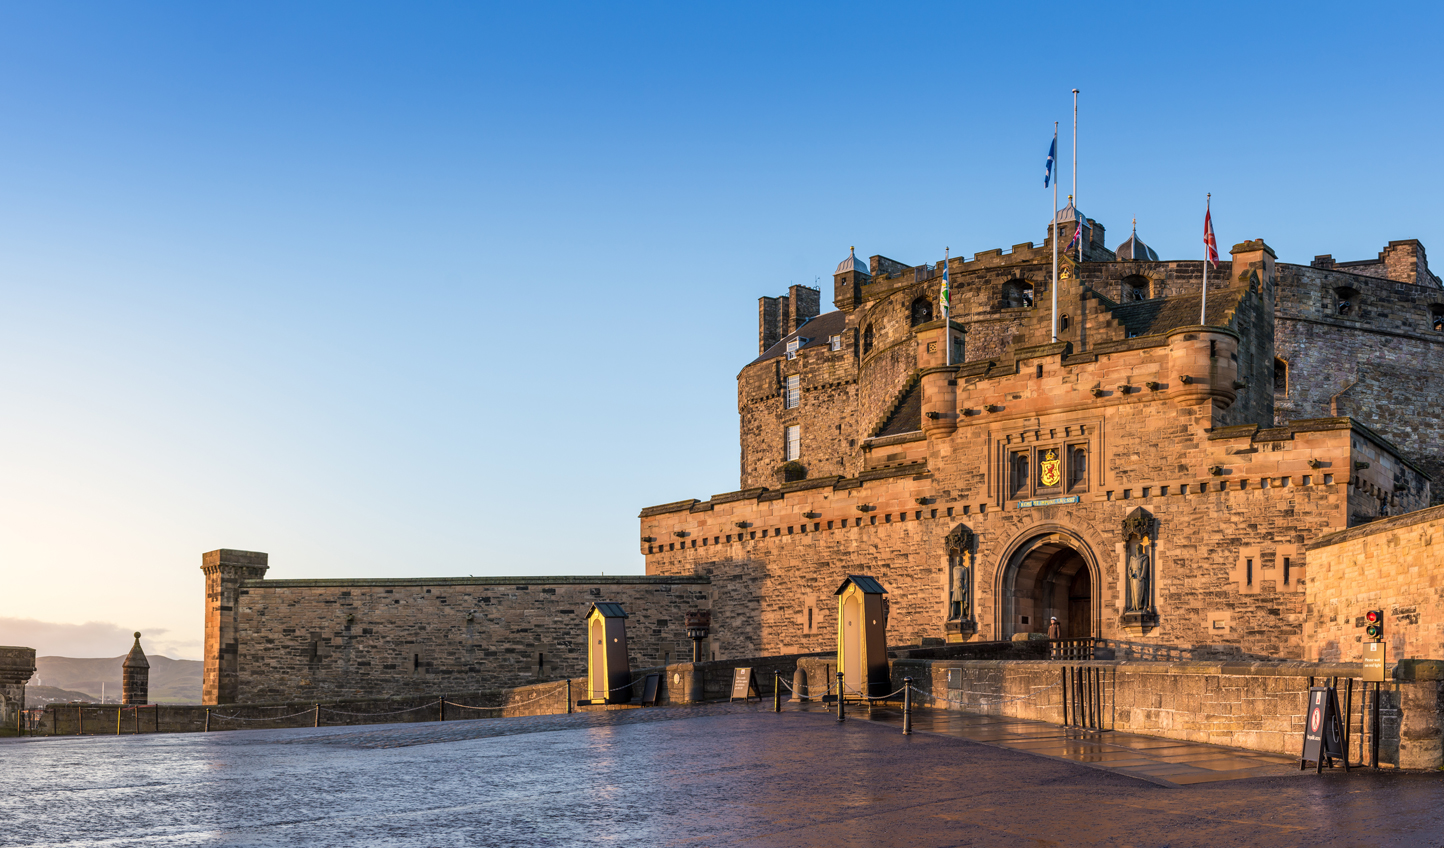 Head up the hill to Edinburgh Castle and look out over the Ramparts to the city around you